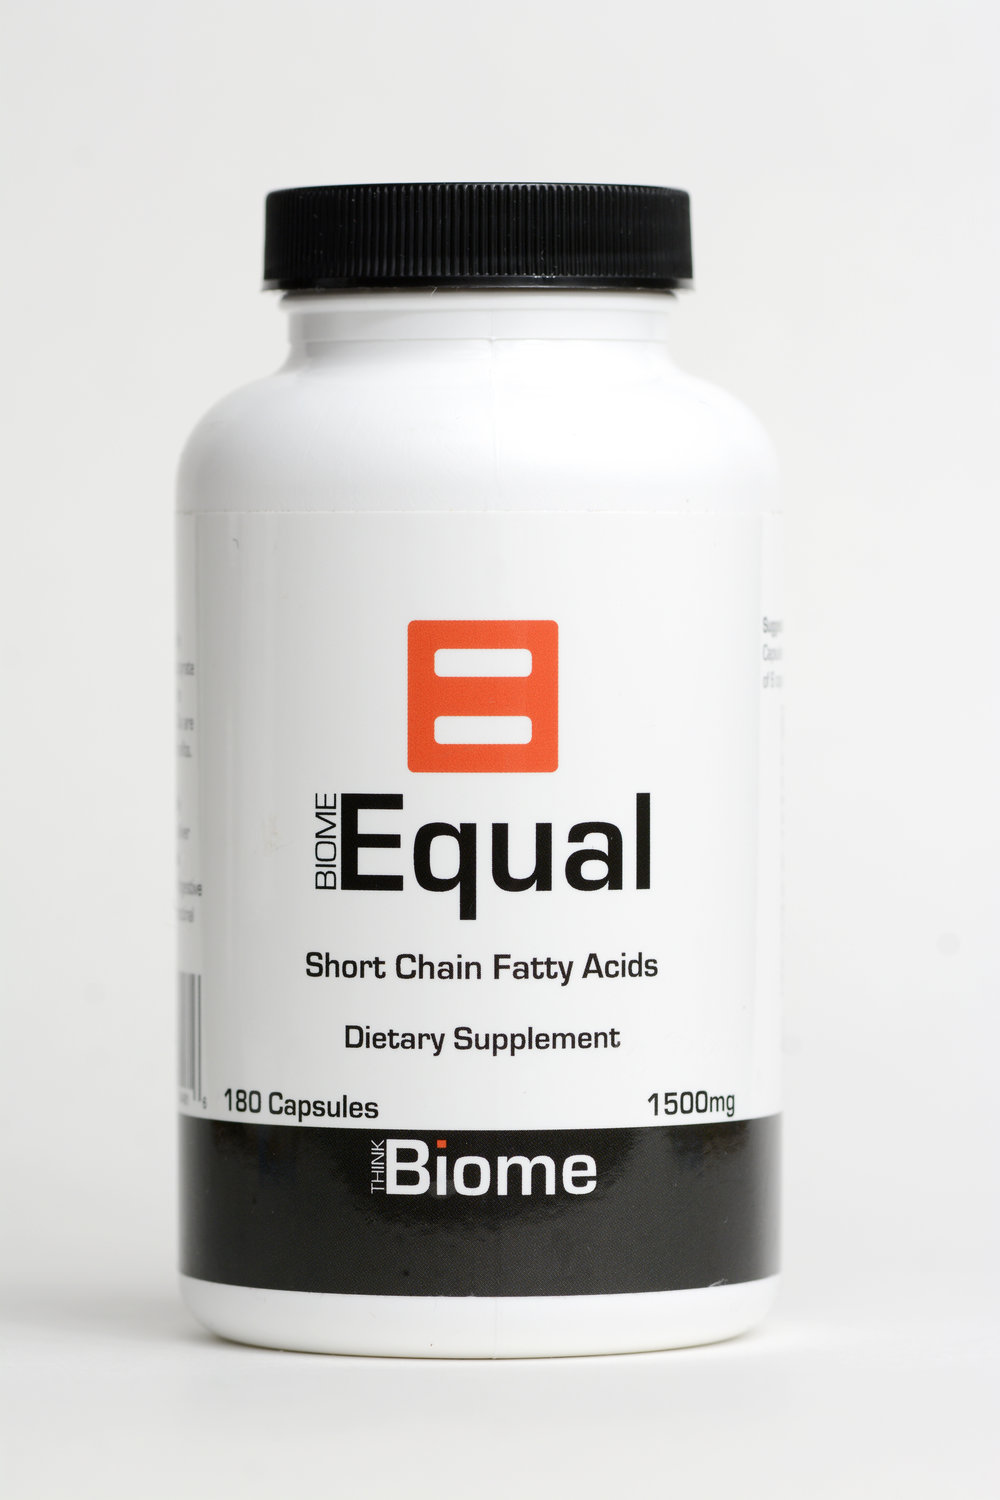 Biome Equal complete postbiotic - UNIQUE SHORT CHAIN FATTY ACID SUPPLEMENT. Contains sodium butyrate and propionate! Banish gut inflammation and fortify your gut microbiome environment.Suggested UsageAs a dietary supplement take 1-2 Capsules of BiomEqual with each meal up to a total of 6 capsules per day.Supplement Facts180 Capsules 30 Days supplyServing Size 2 Capsules  (750mg/capsule)Serving Per Container 90Amount Per Serving 1500mg                                                     % Daily Values*Sodium Butyrate           1200mg            †Sodium Propionate        300mg            †* Percent Daily Values are based on a 2,000 calorie diet.† Daily Value not established